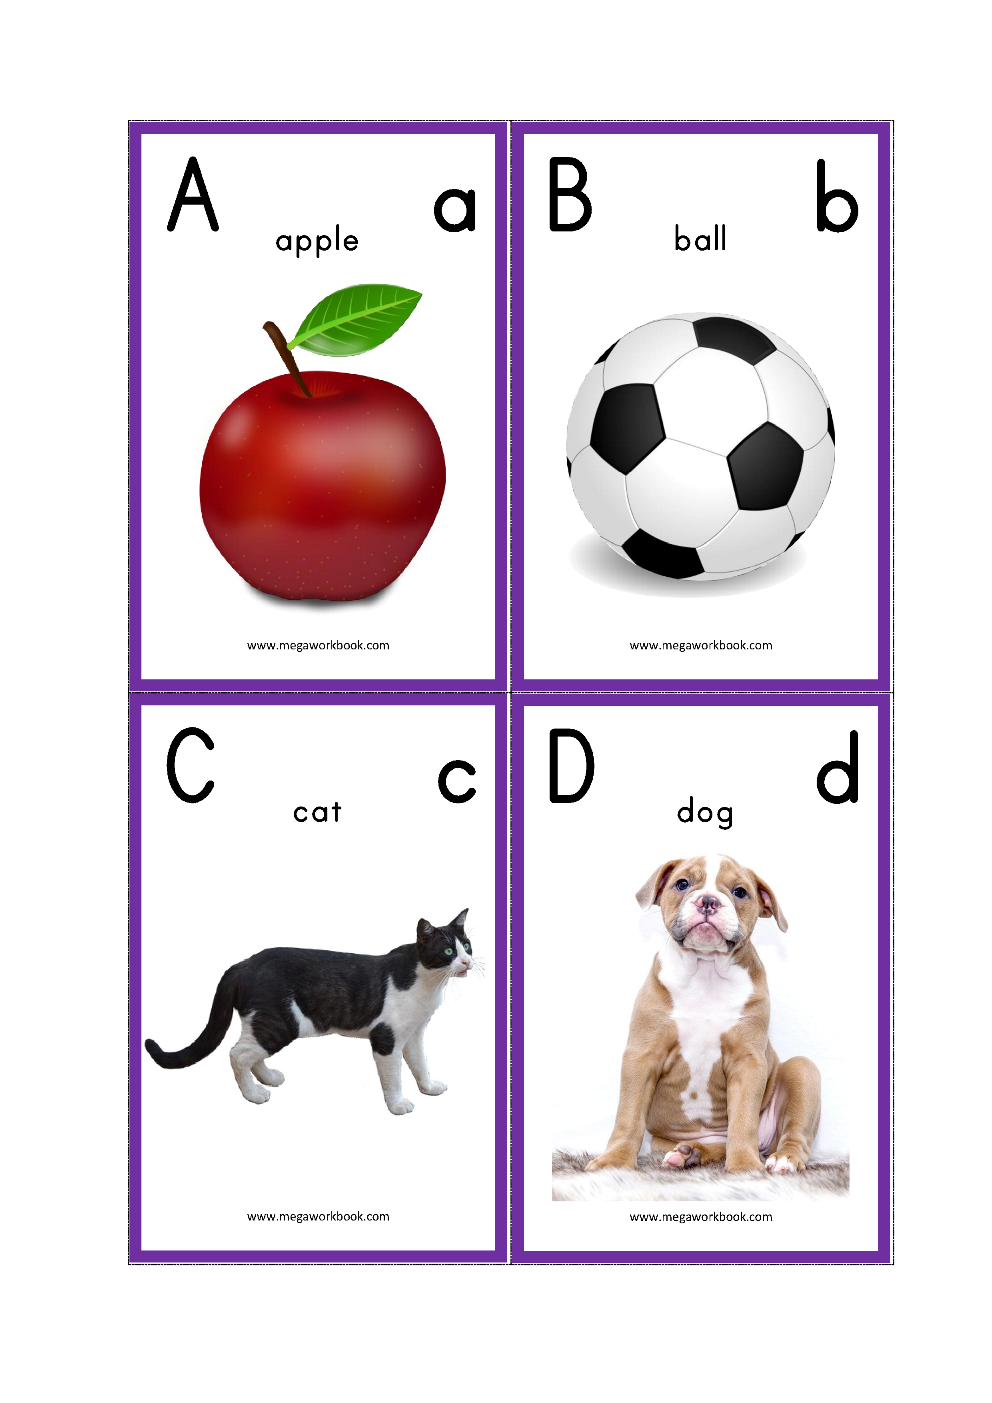 photo about Abc Cards Printable named Alphabet Flash Playing cards - ABC Flash Playing cards - Letter Flashcards